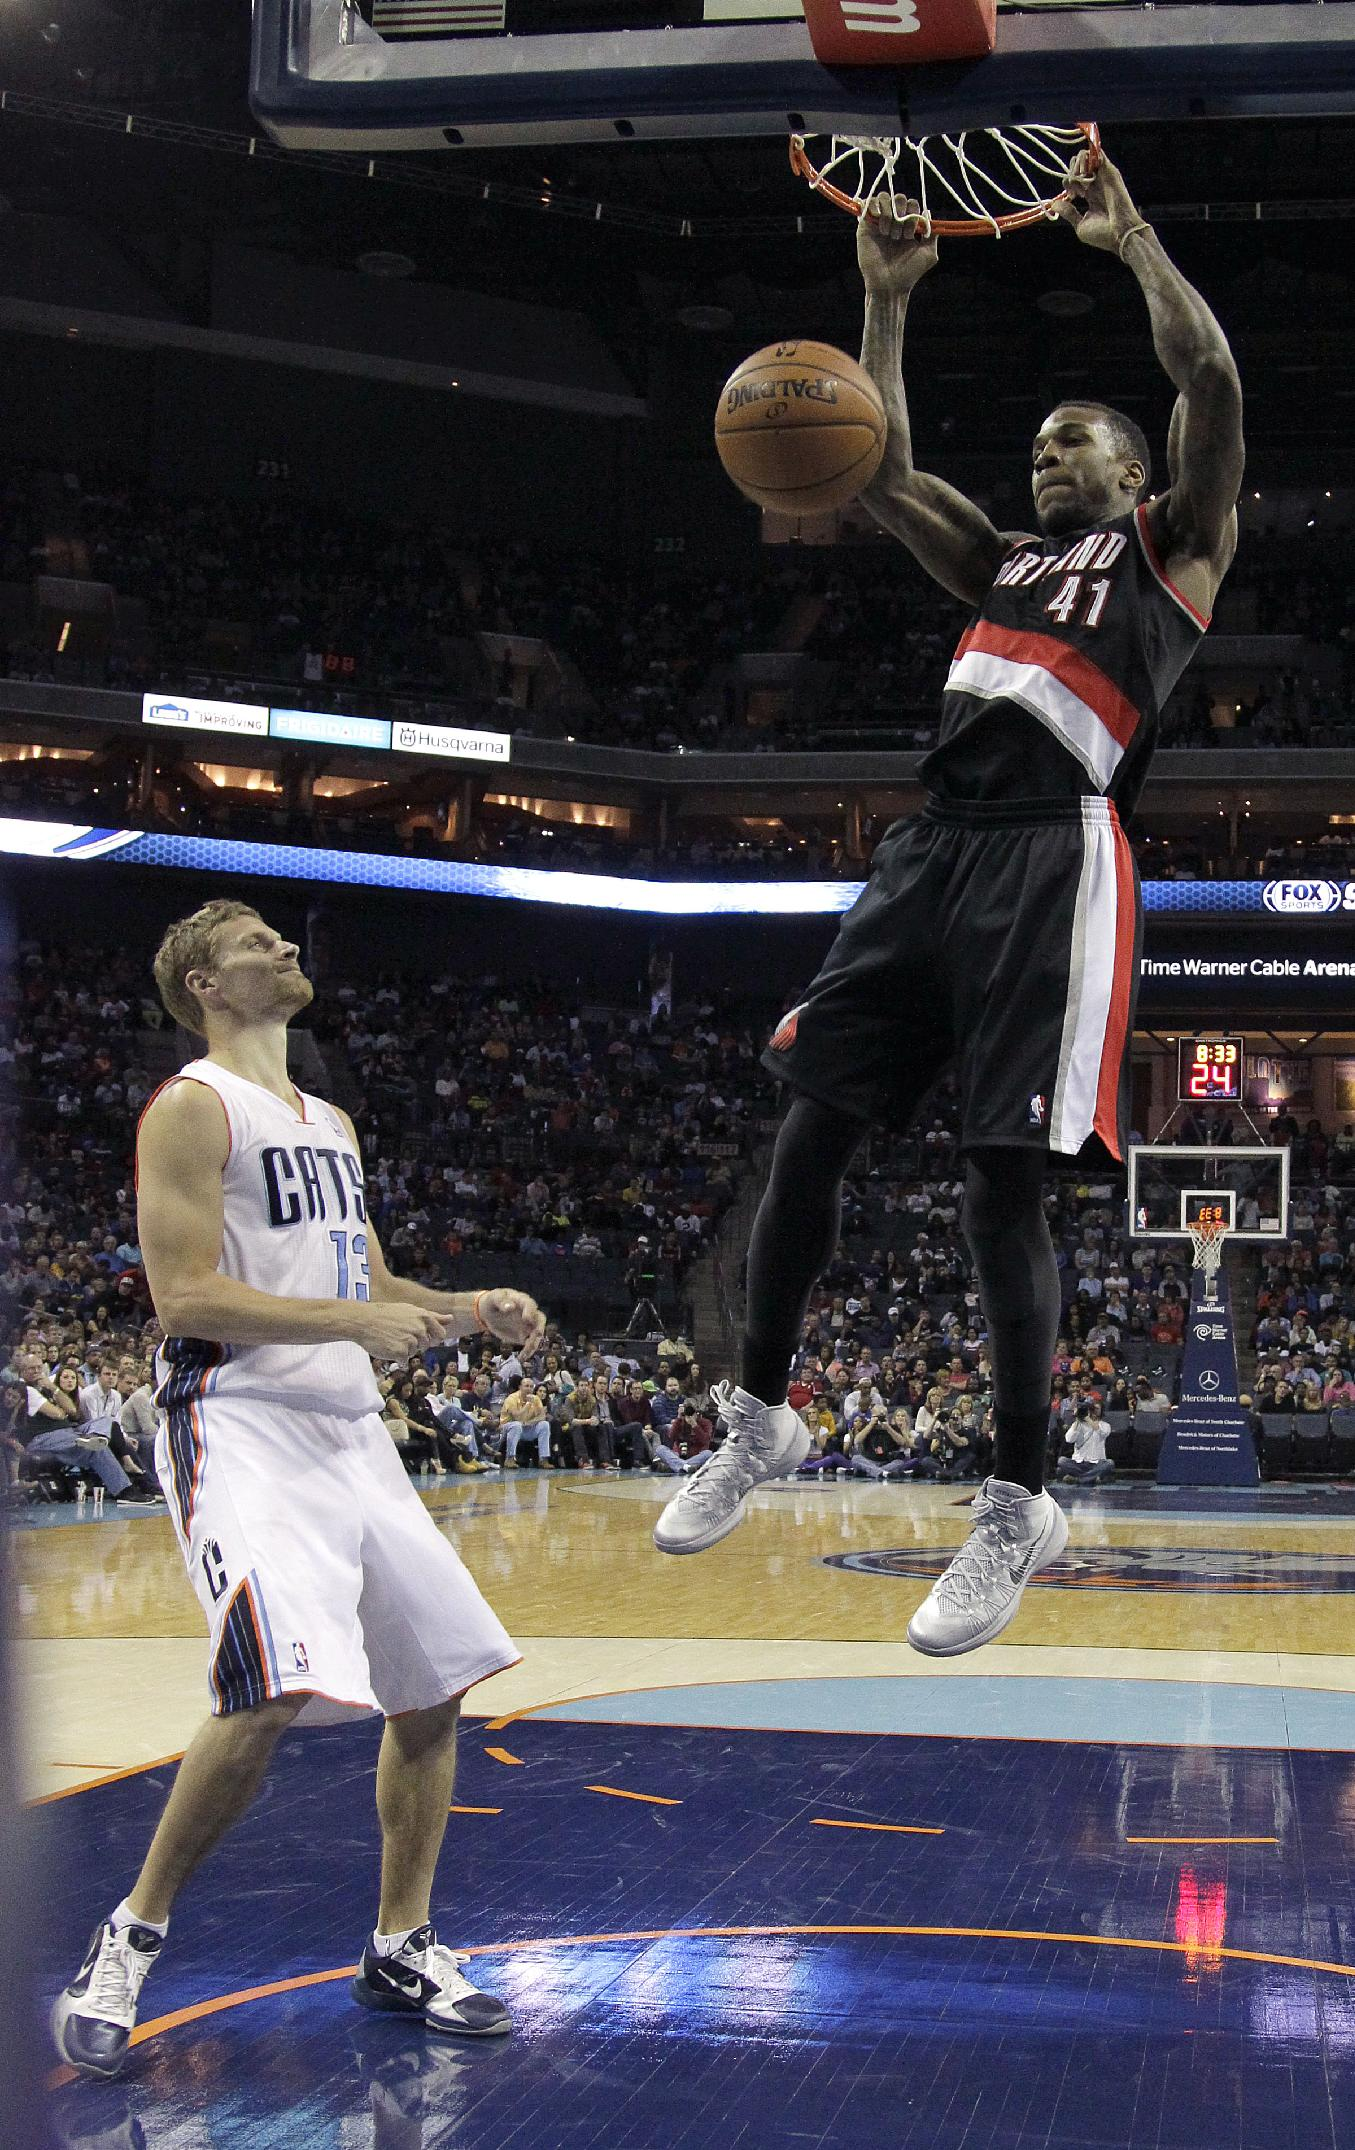 Charlotte Bobcats' Luke Ridnour (13) can only watch as Portland Trail Blazers' Thomas Robinson (41) dunks during the first half of an NBA basketball game in Charlotte, N.C., Saturday, March 22, 2014